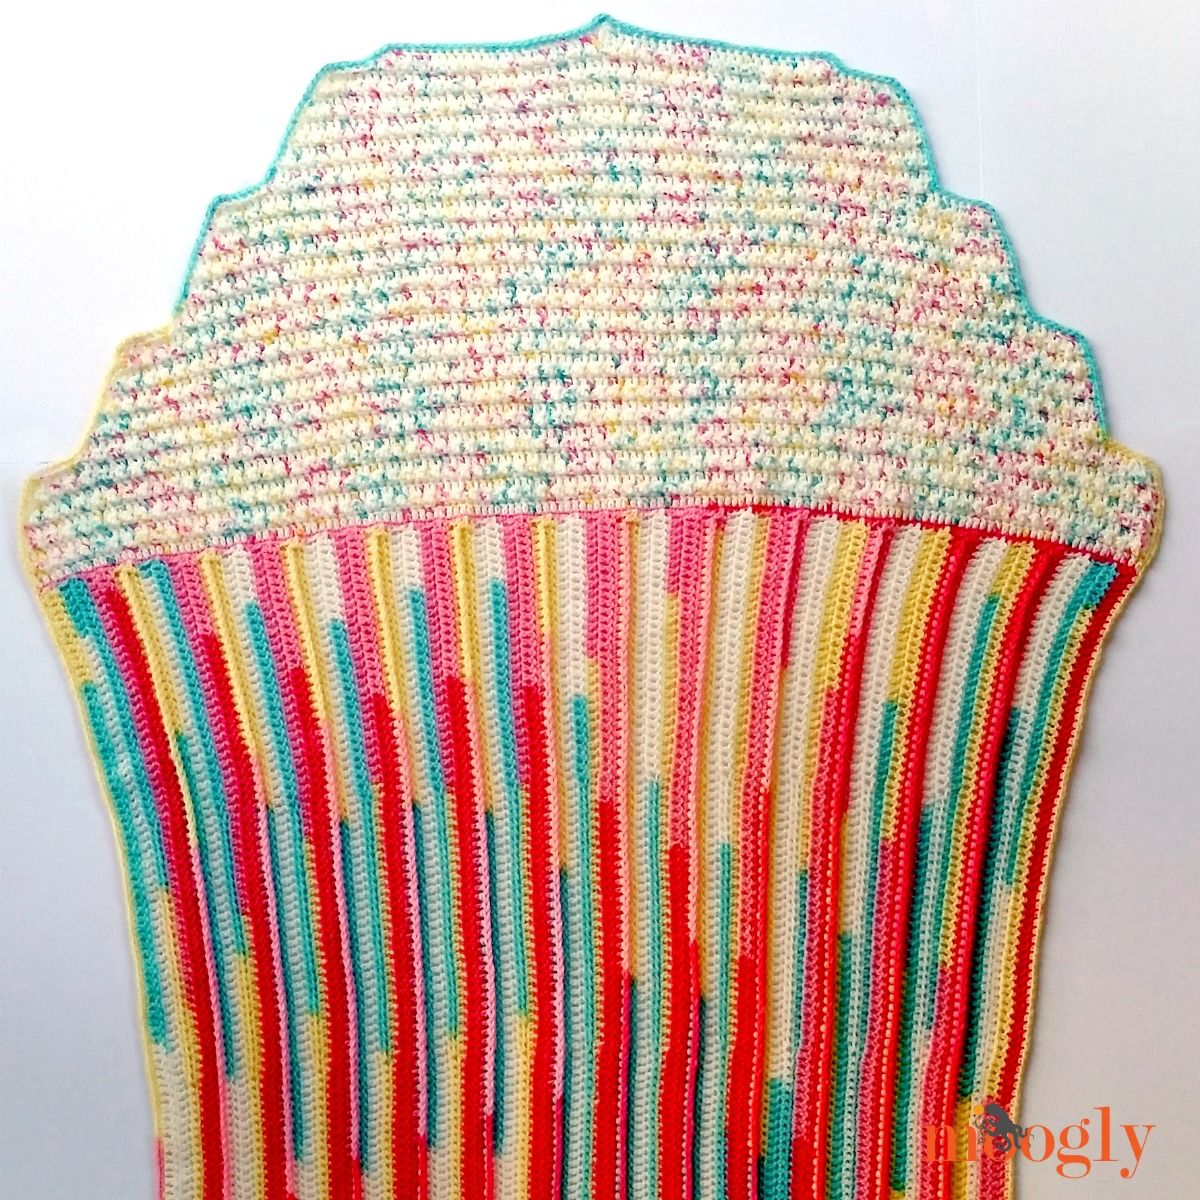 Crocheted Cupcake Baby Blanket - Craftfoxes